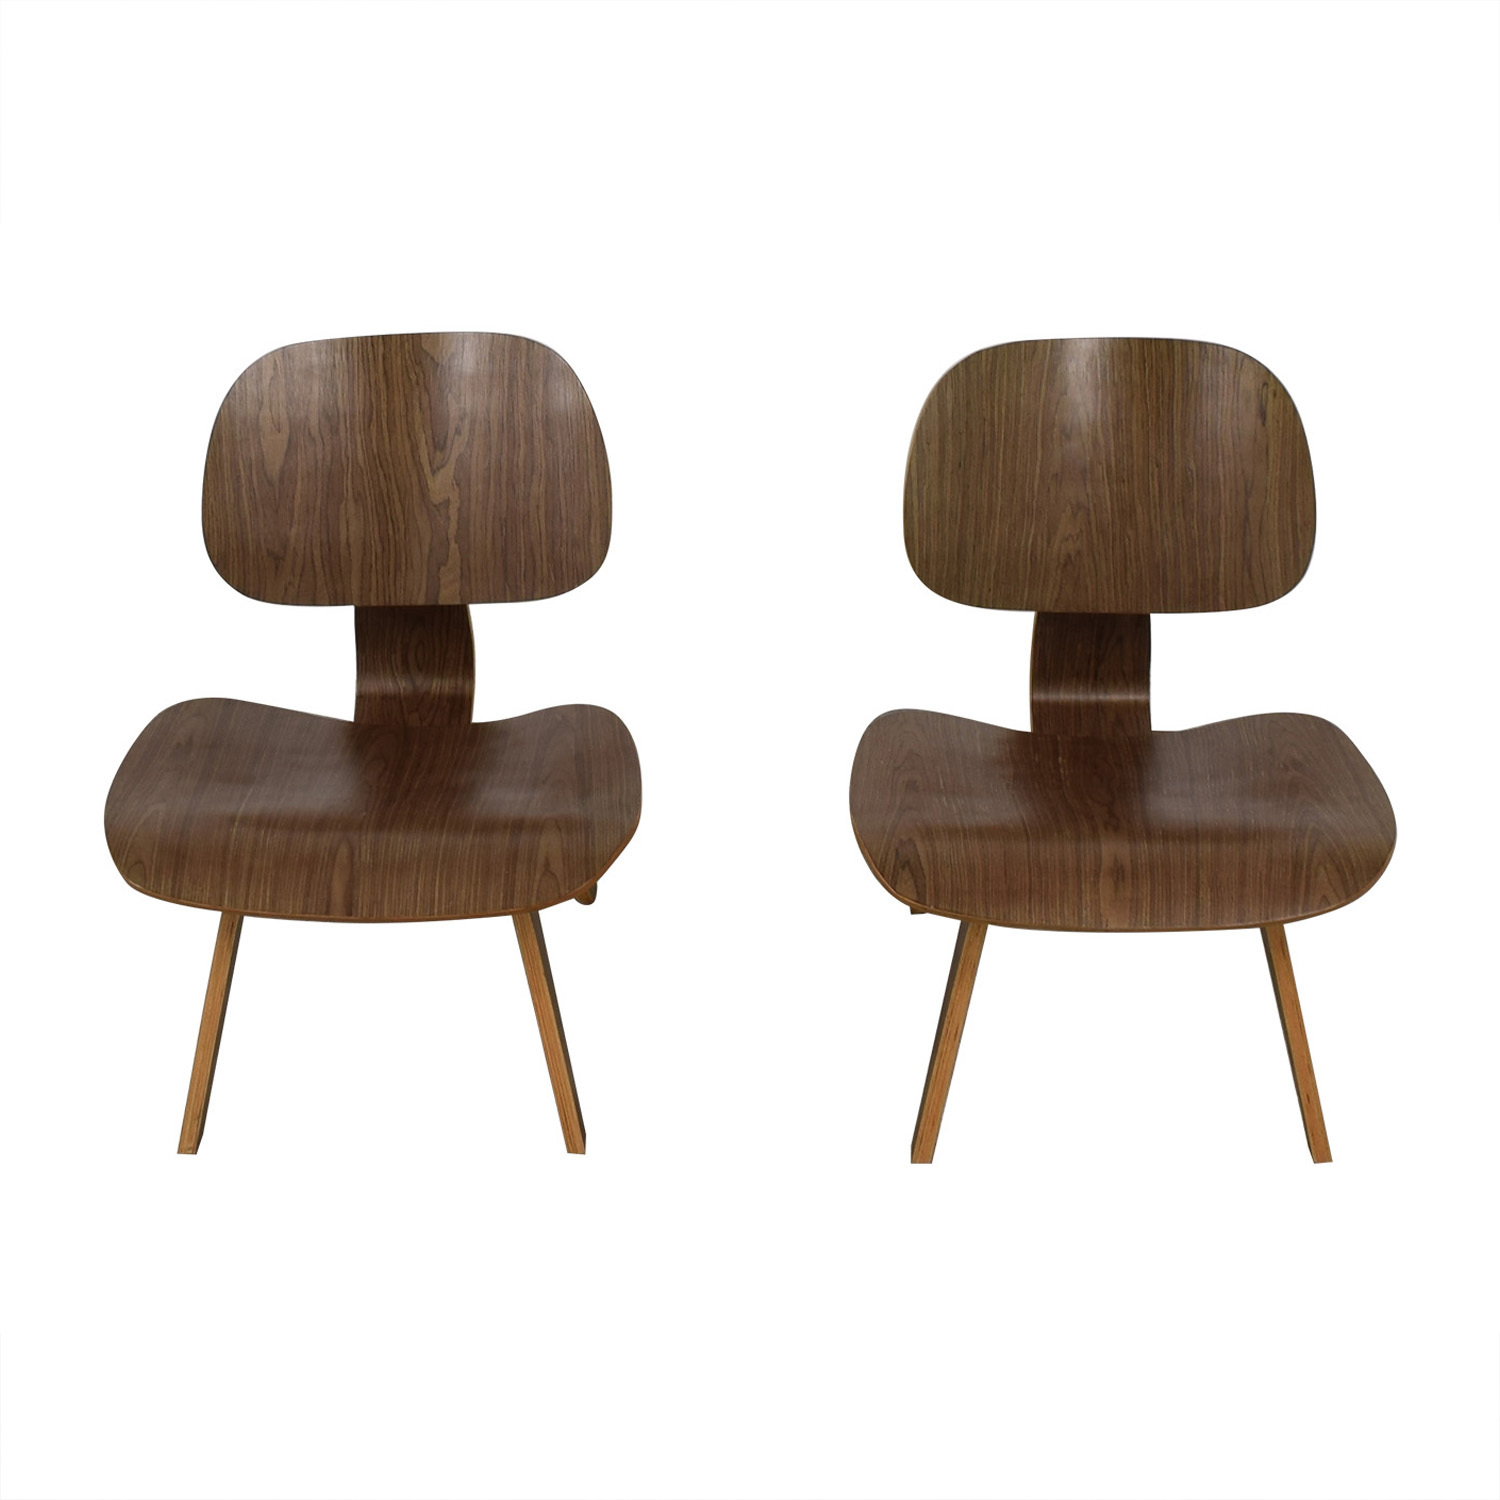 Modway Modway Natural Fathom Plywood Dining Chairs second hand